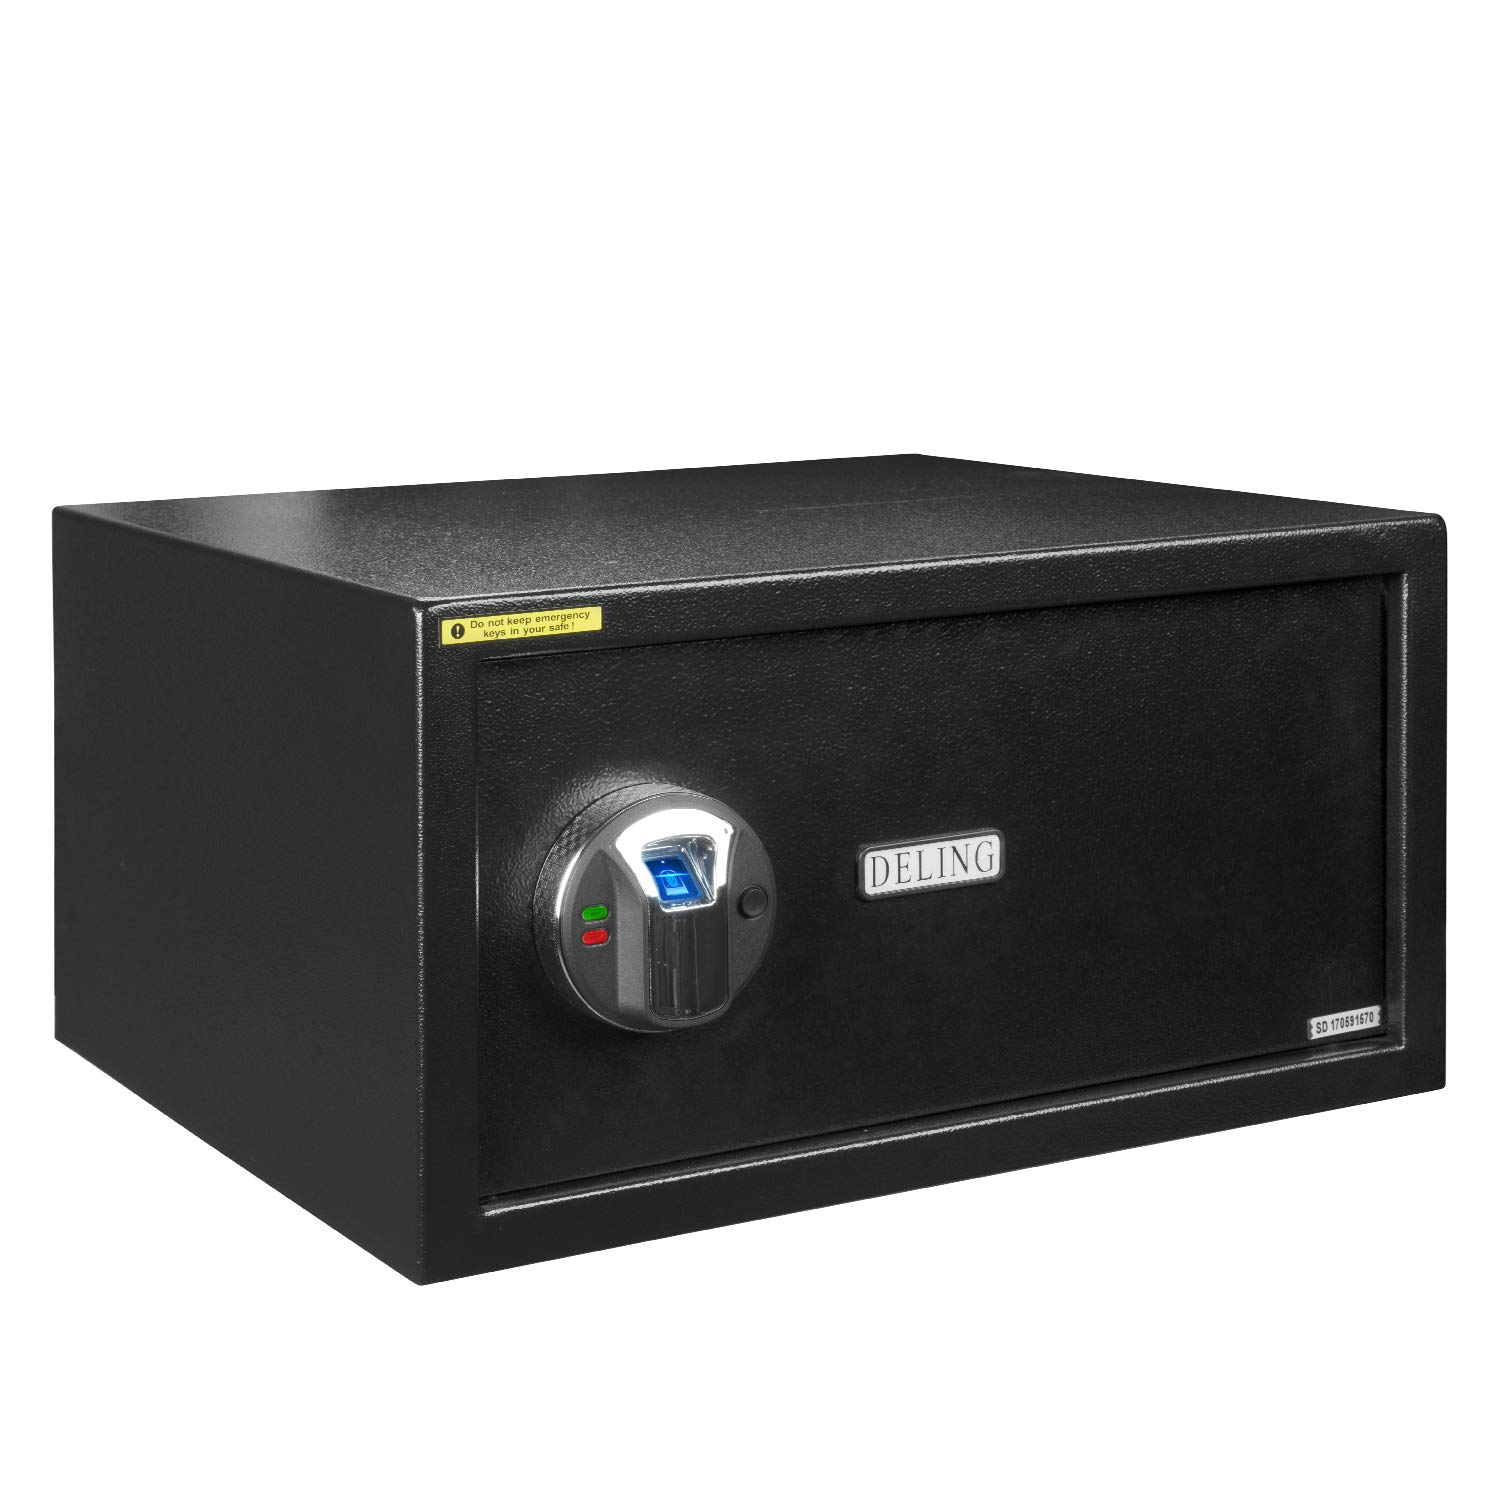 HYD-Parts Digital Security Safety Box,Black Money Gun Safe Cabinet Box for Home Office Gifts (23)